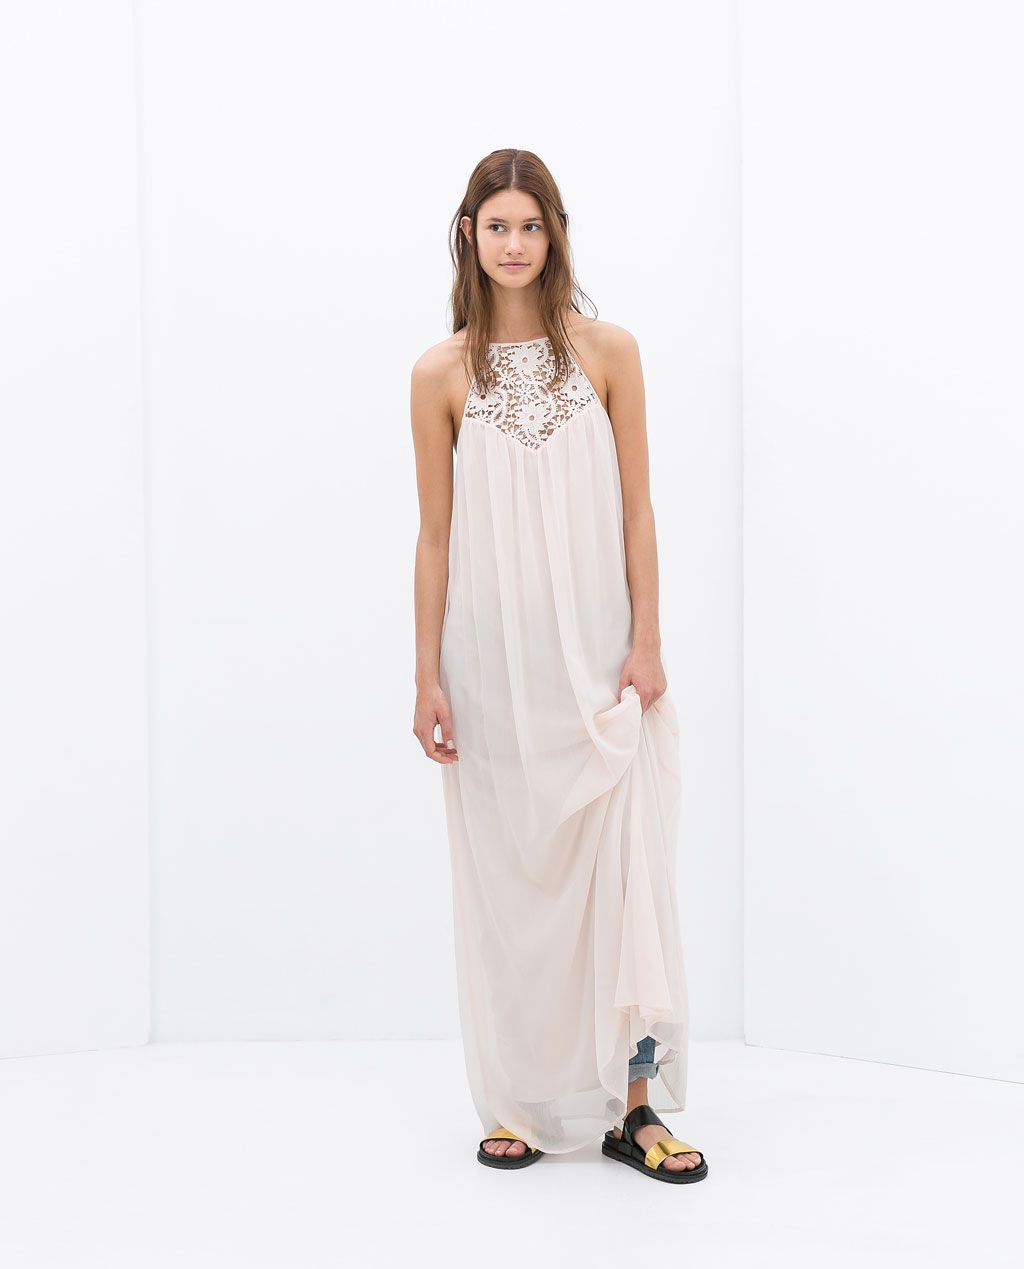 Long dress from zara my style haves want and wish list long dress from zara ombrellifo Choice Image